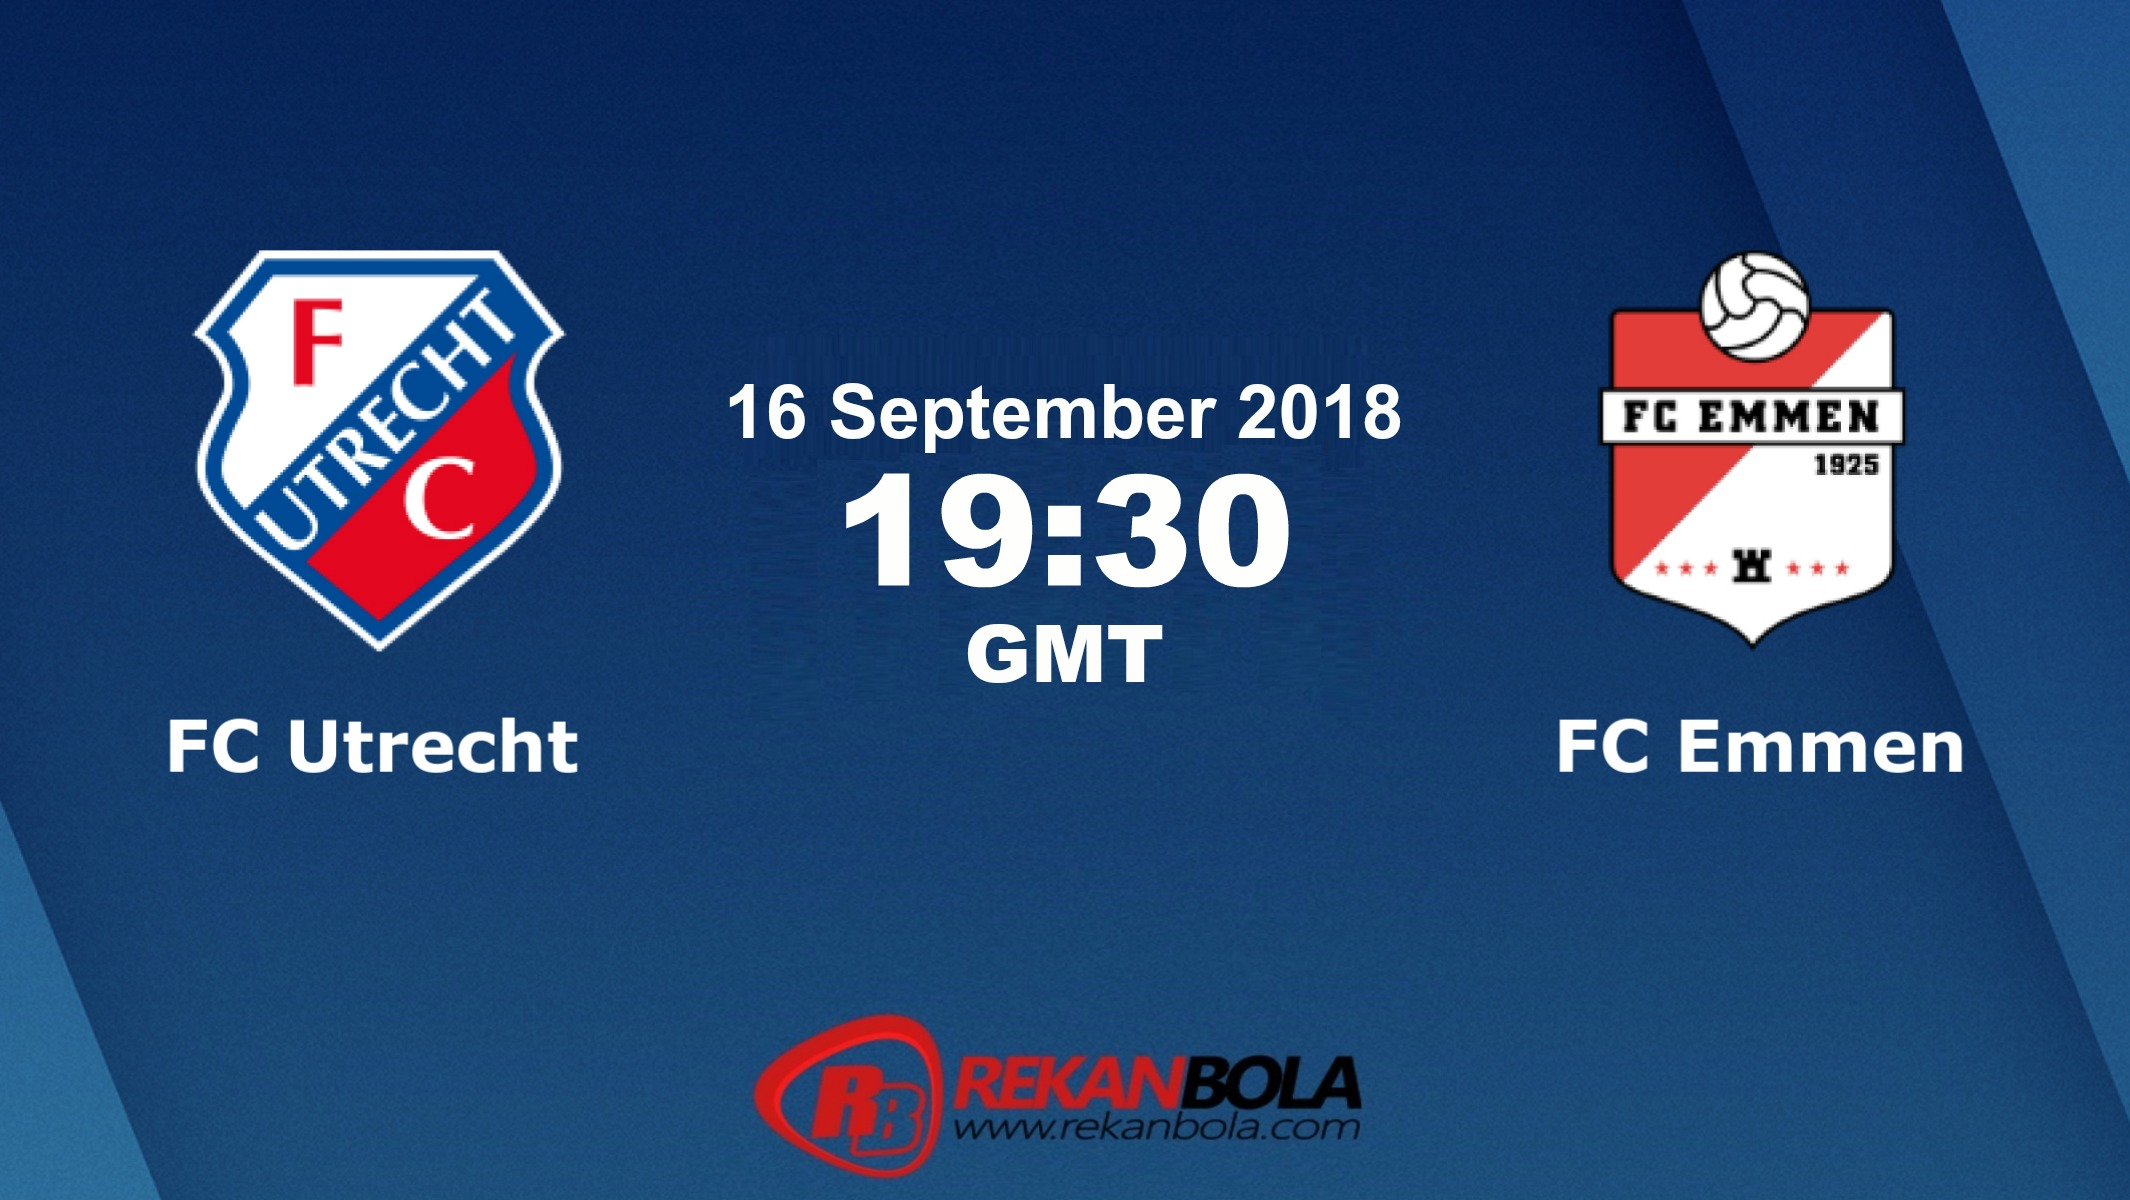 Nonton Siaran Live Streaming Utrecht Vs Emmen 16 September 2018